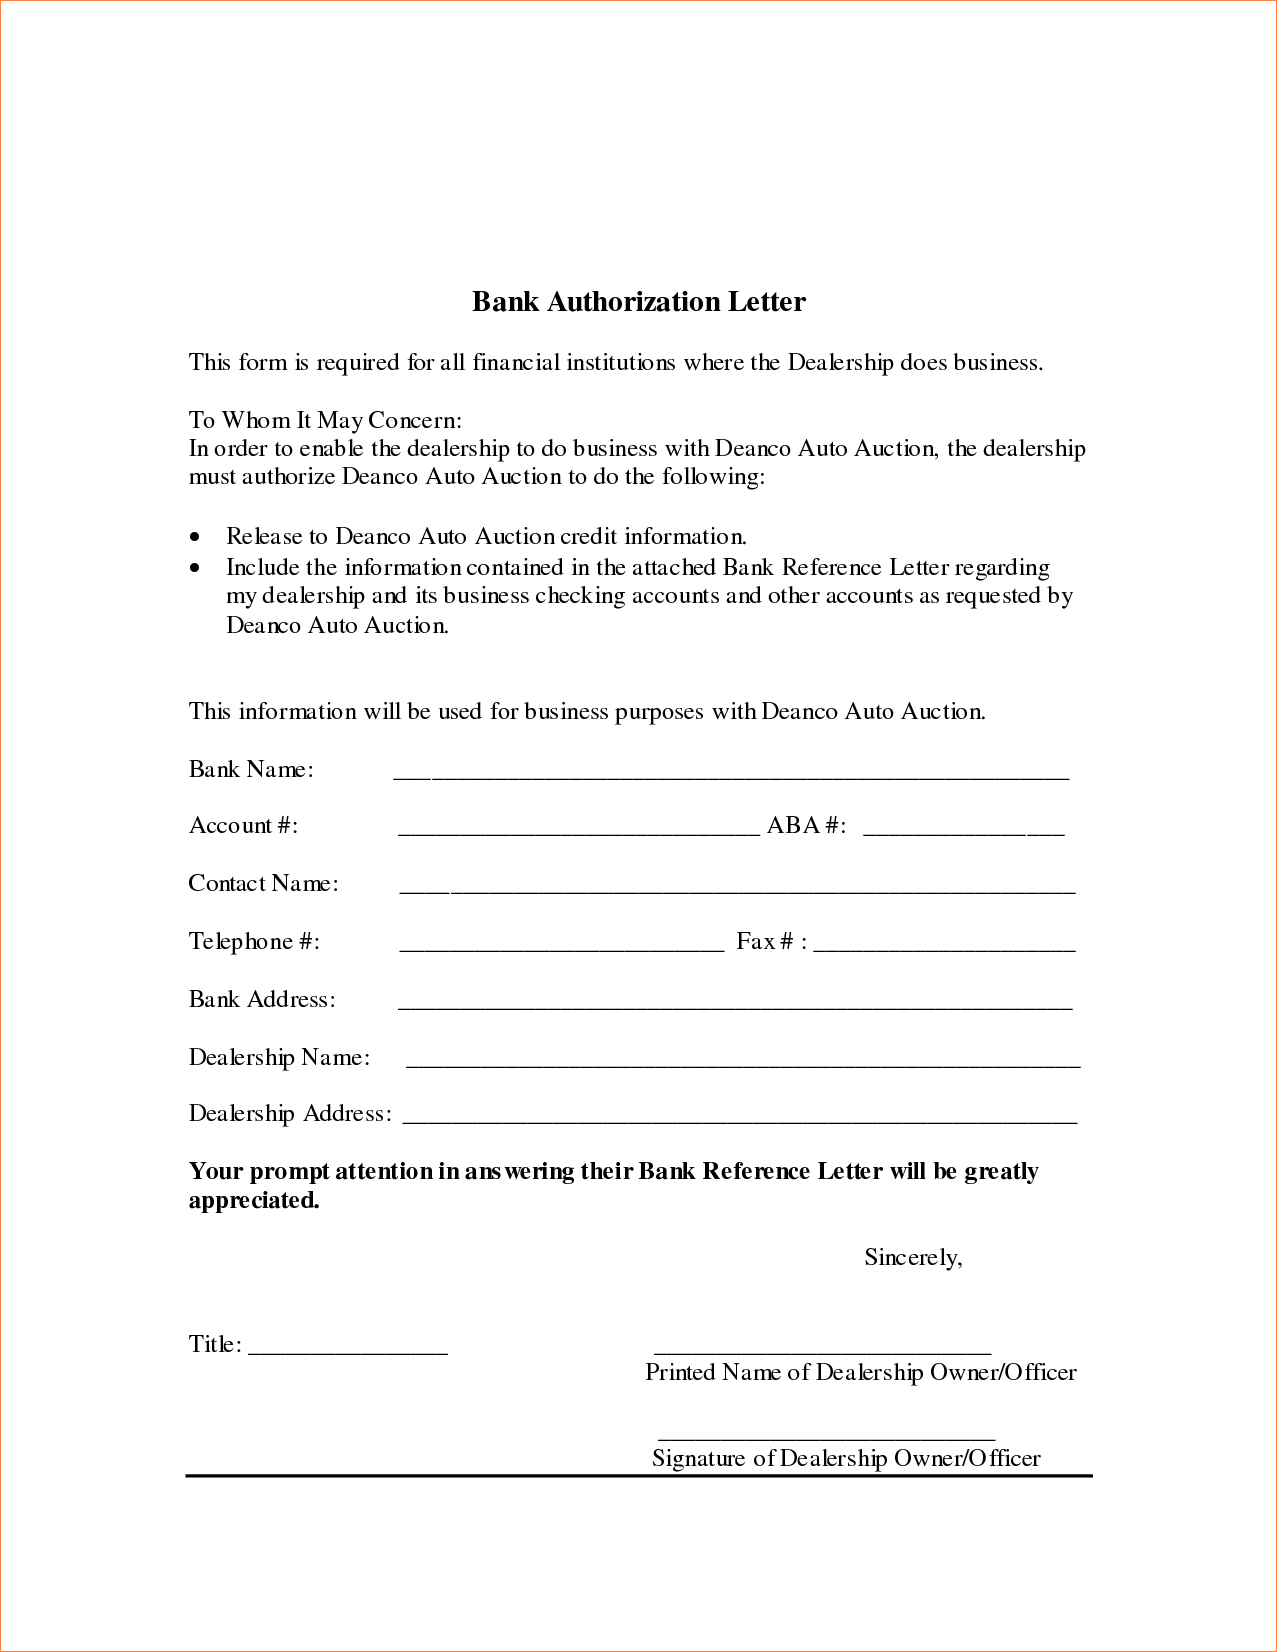 Bank Authorization Letter Procedure Template Sample Download Free